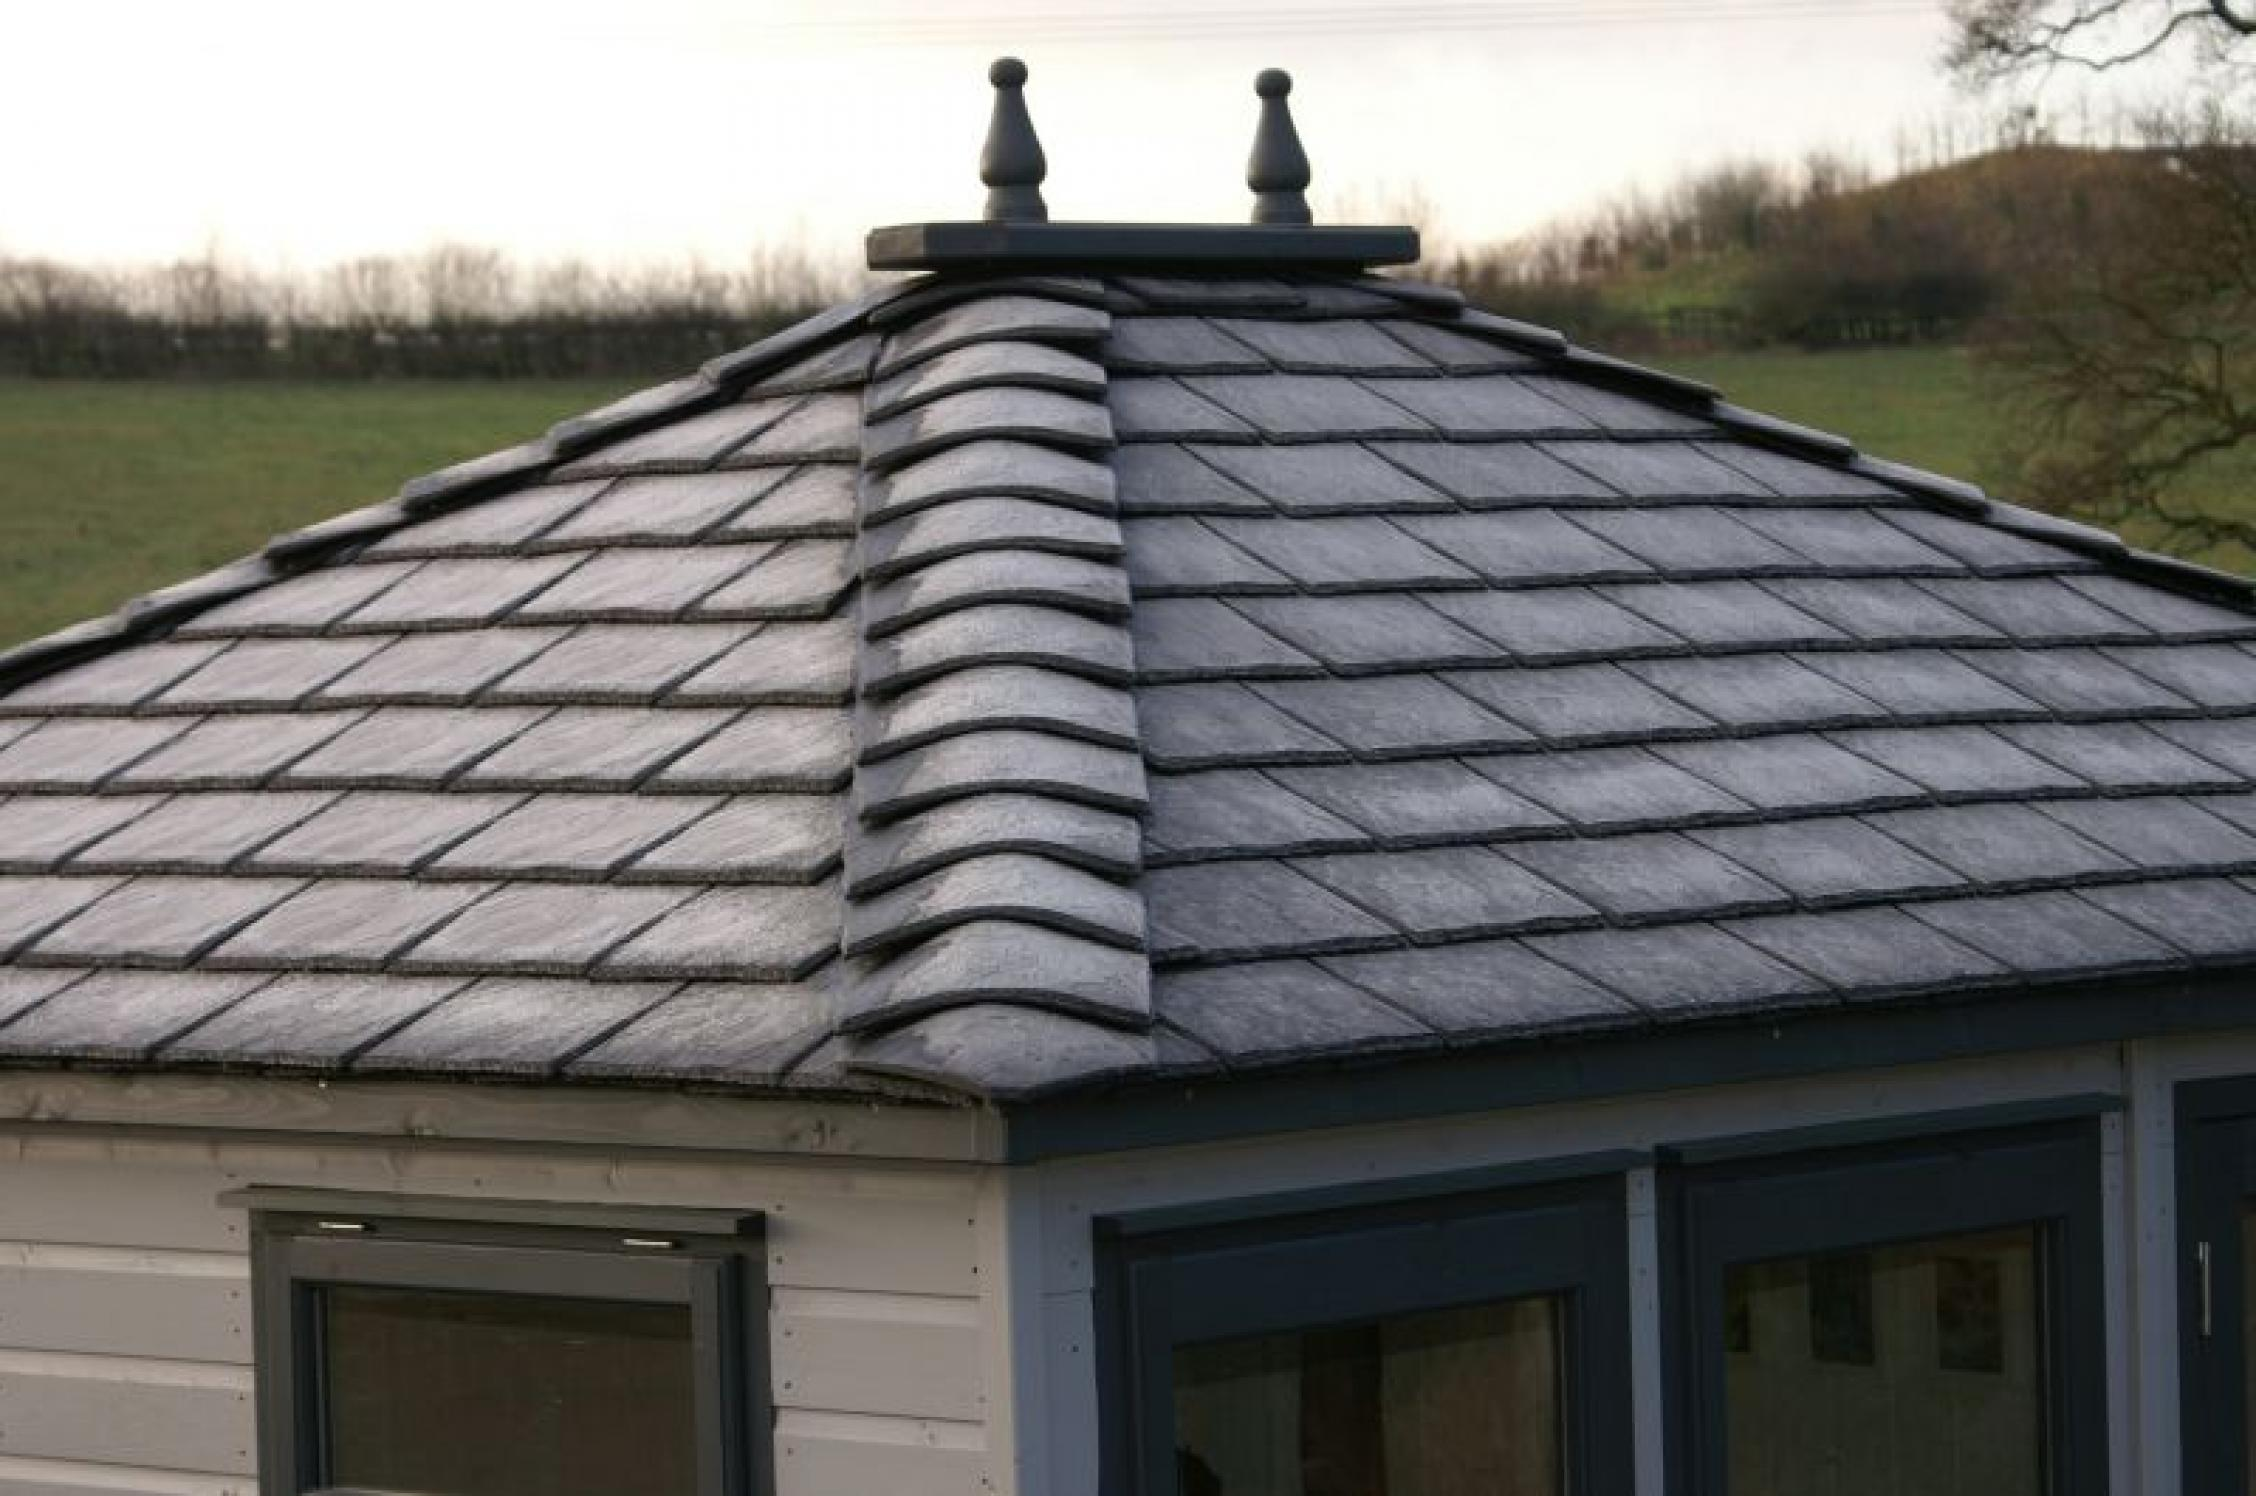 Eco-Tiled Roof